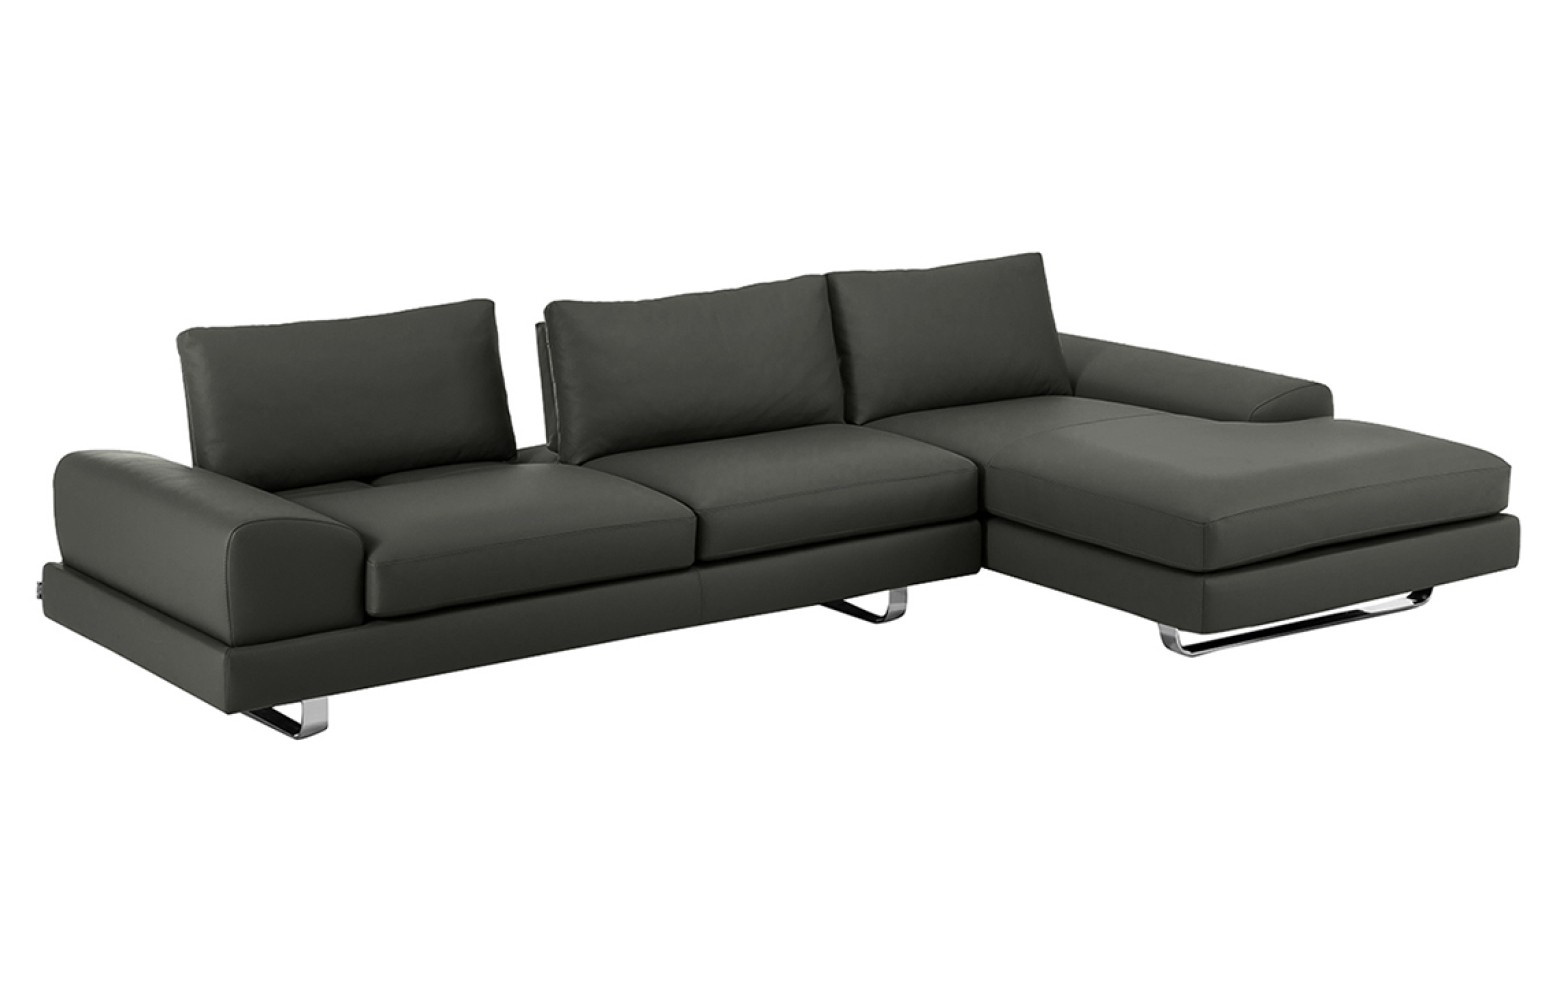 Ecksofa Outlet Santorini Ecksofa Sofas Online Outlet Who 39s Perfect